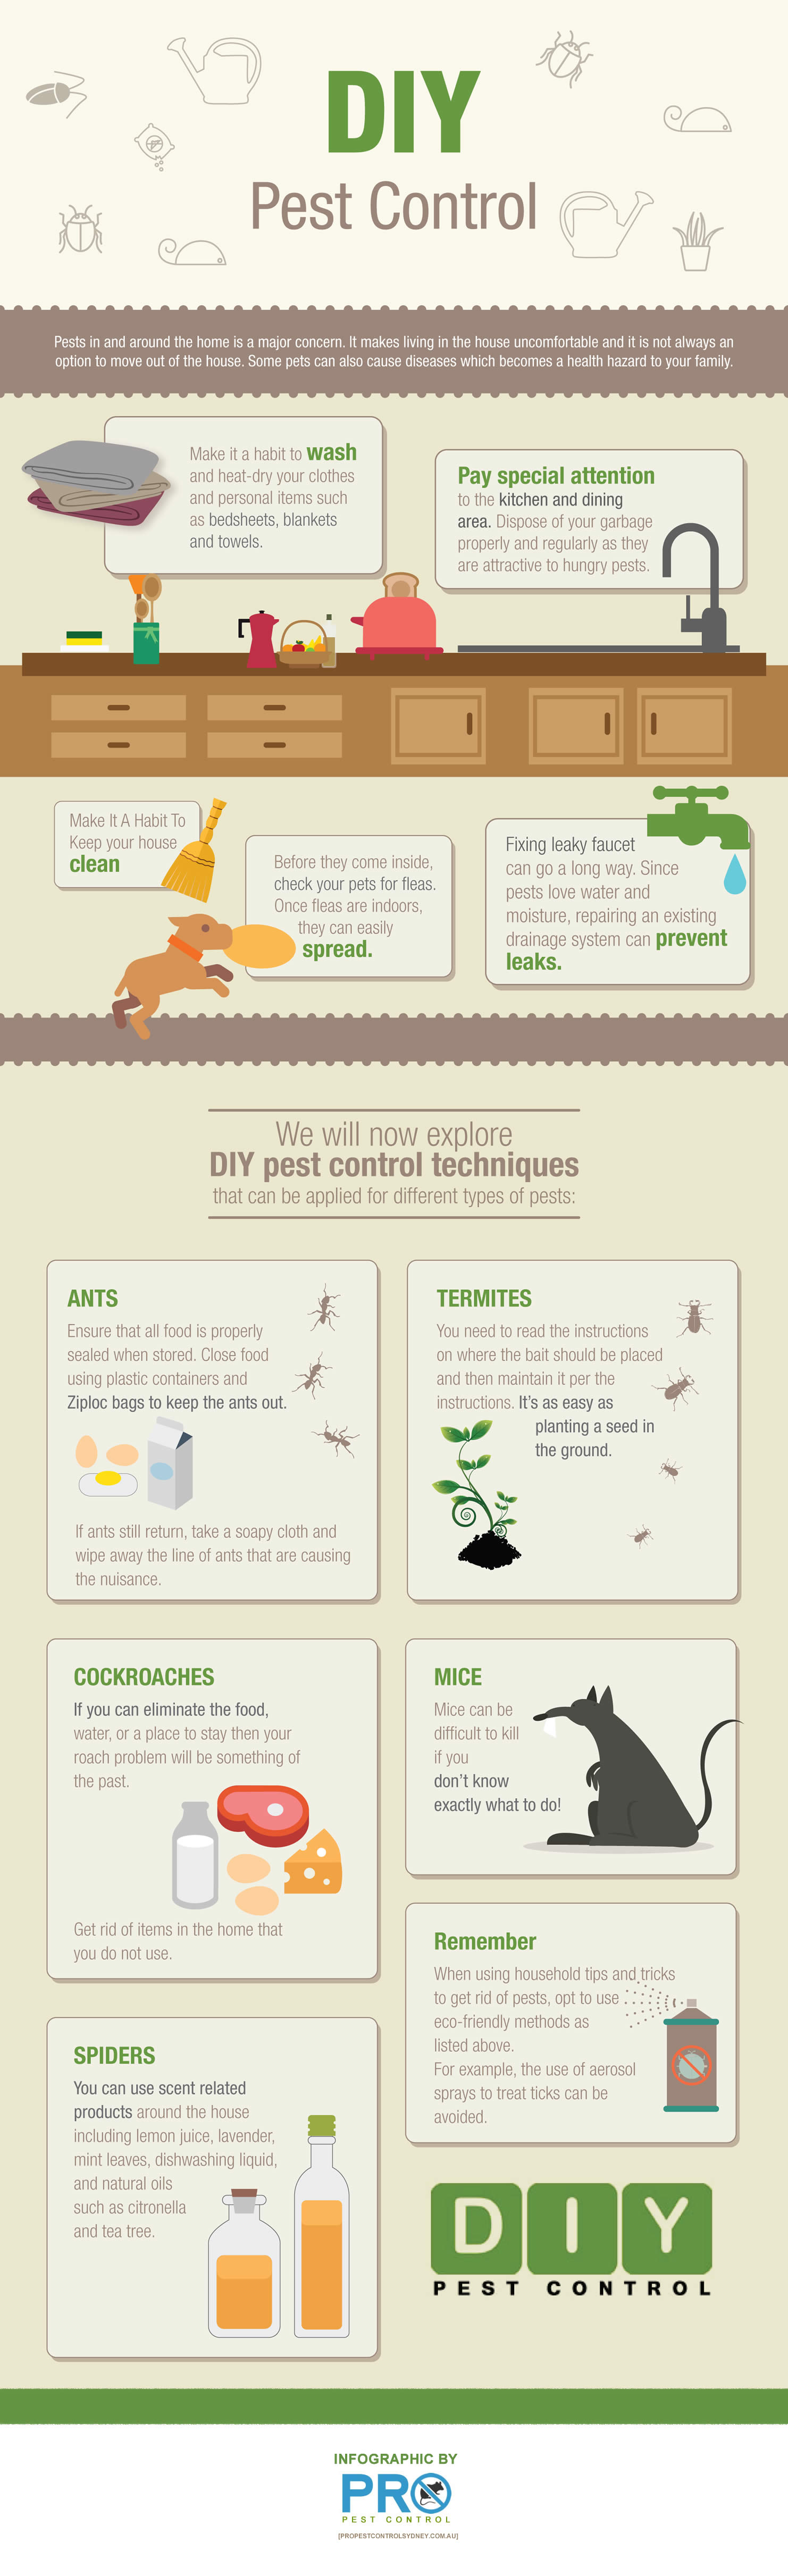 Secrets To A Pest-Free Home - Infographic